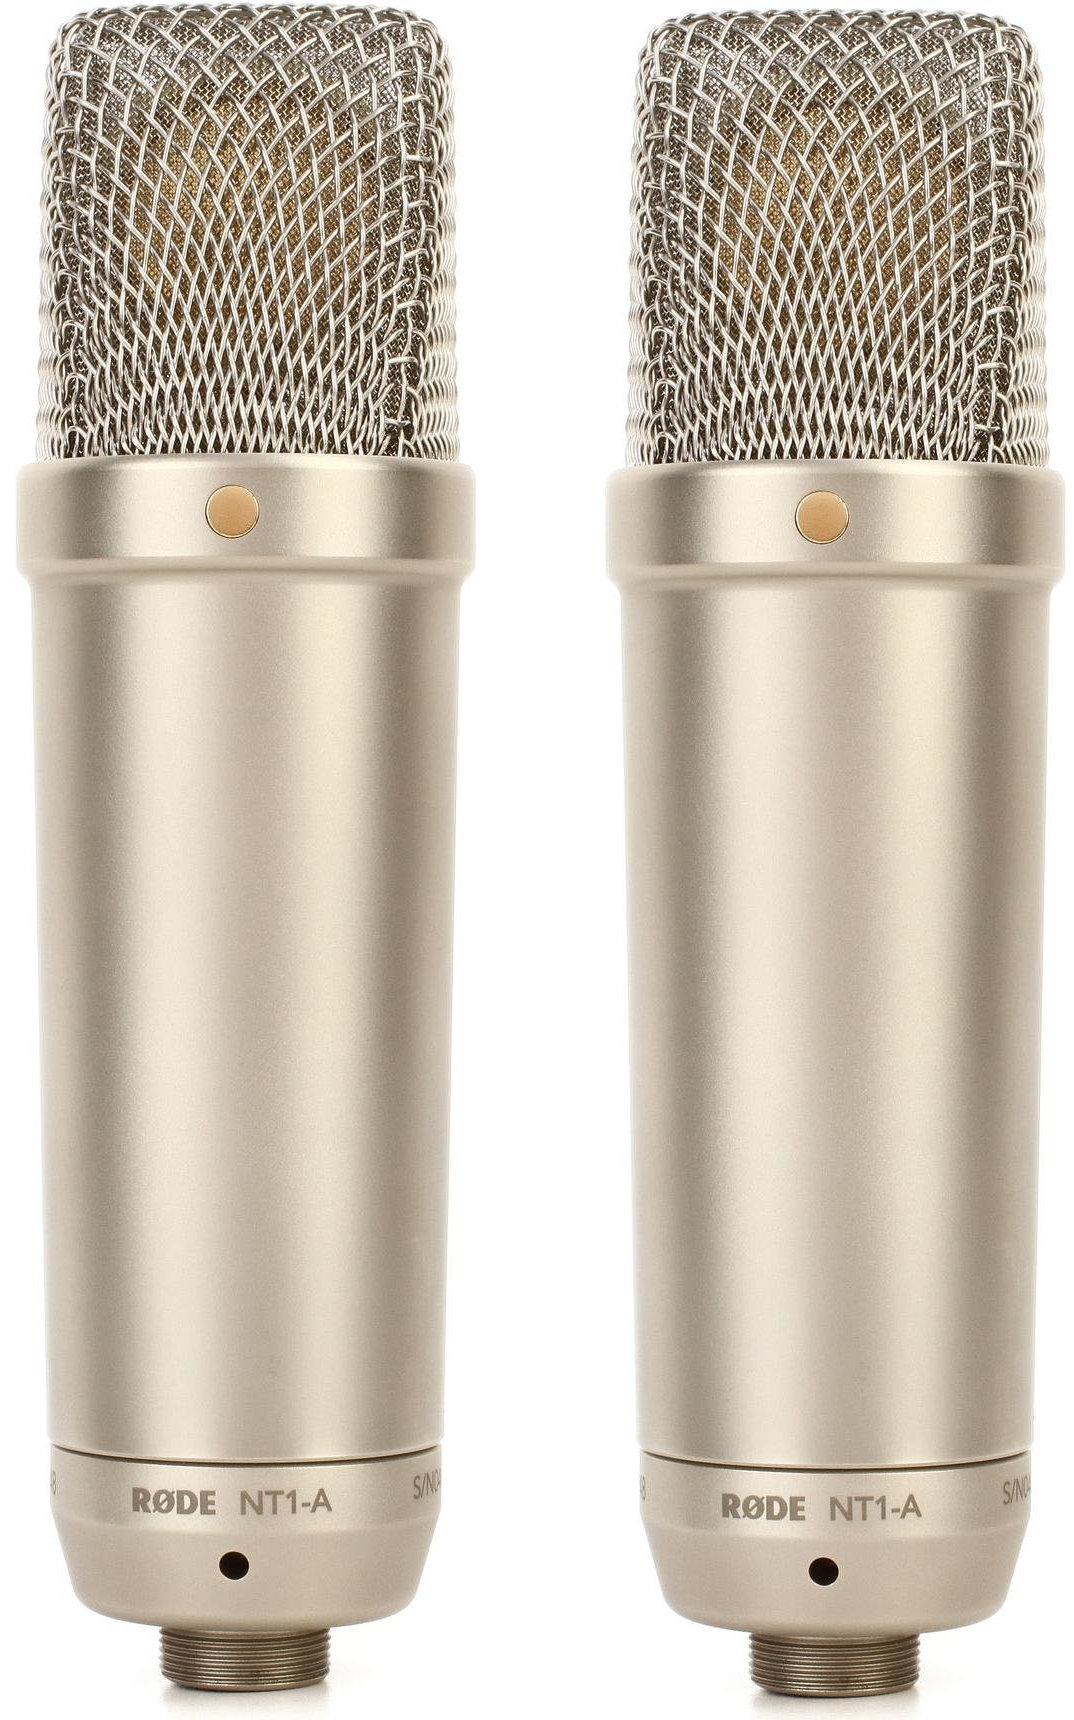 Rode NT1-A-MP Matched Stereo Pair Large-diaphragm Condenser Microphones